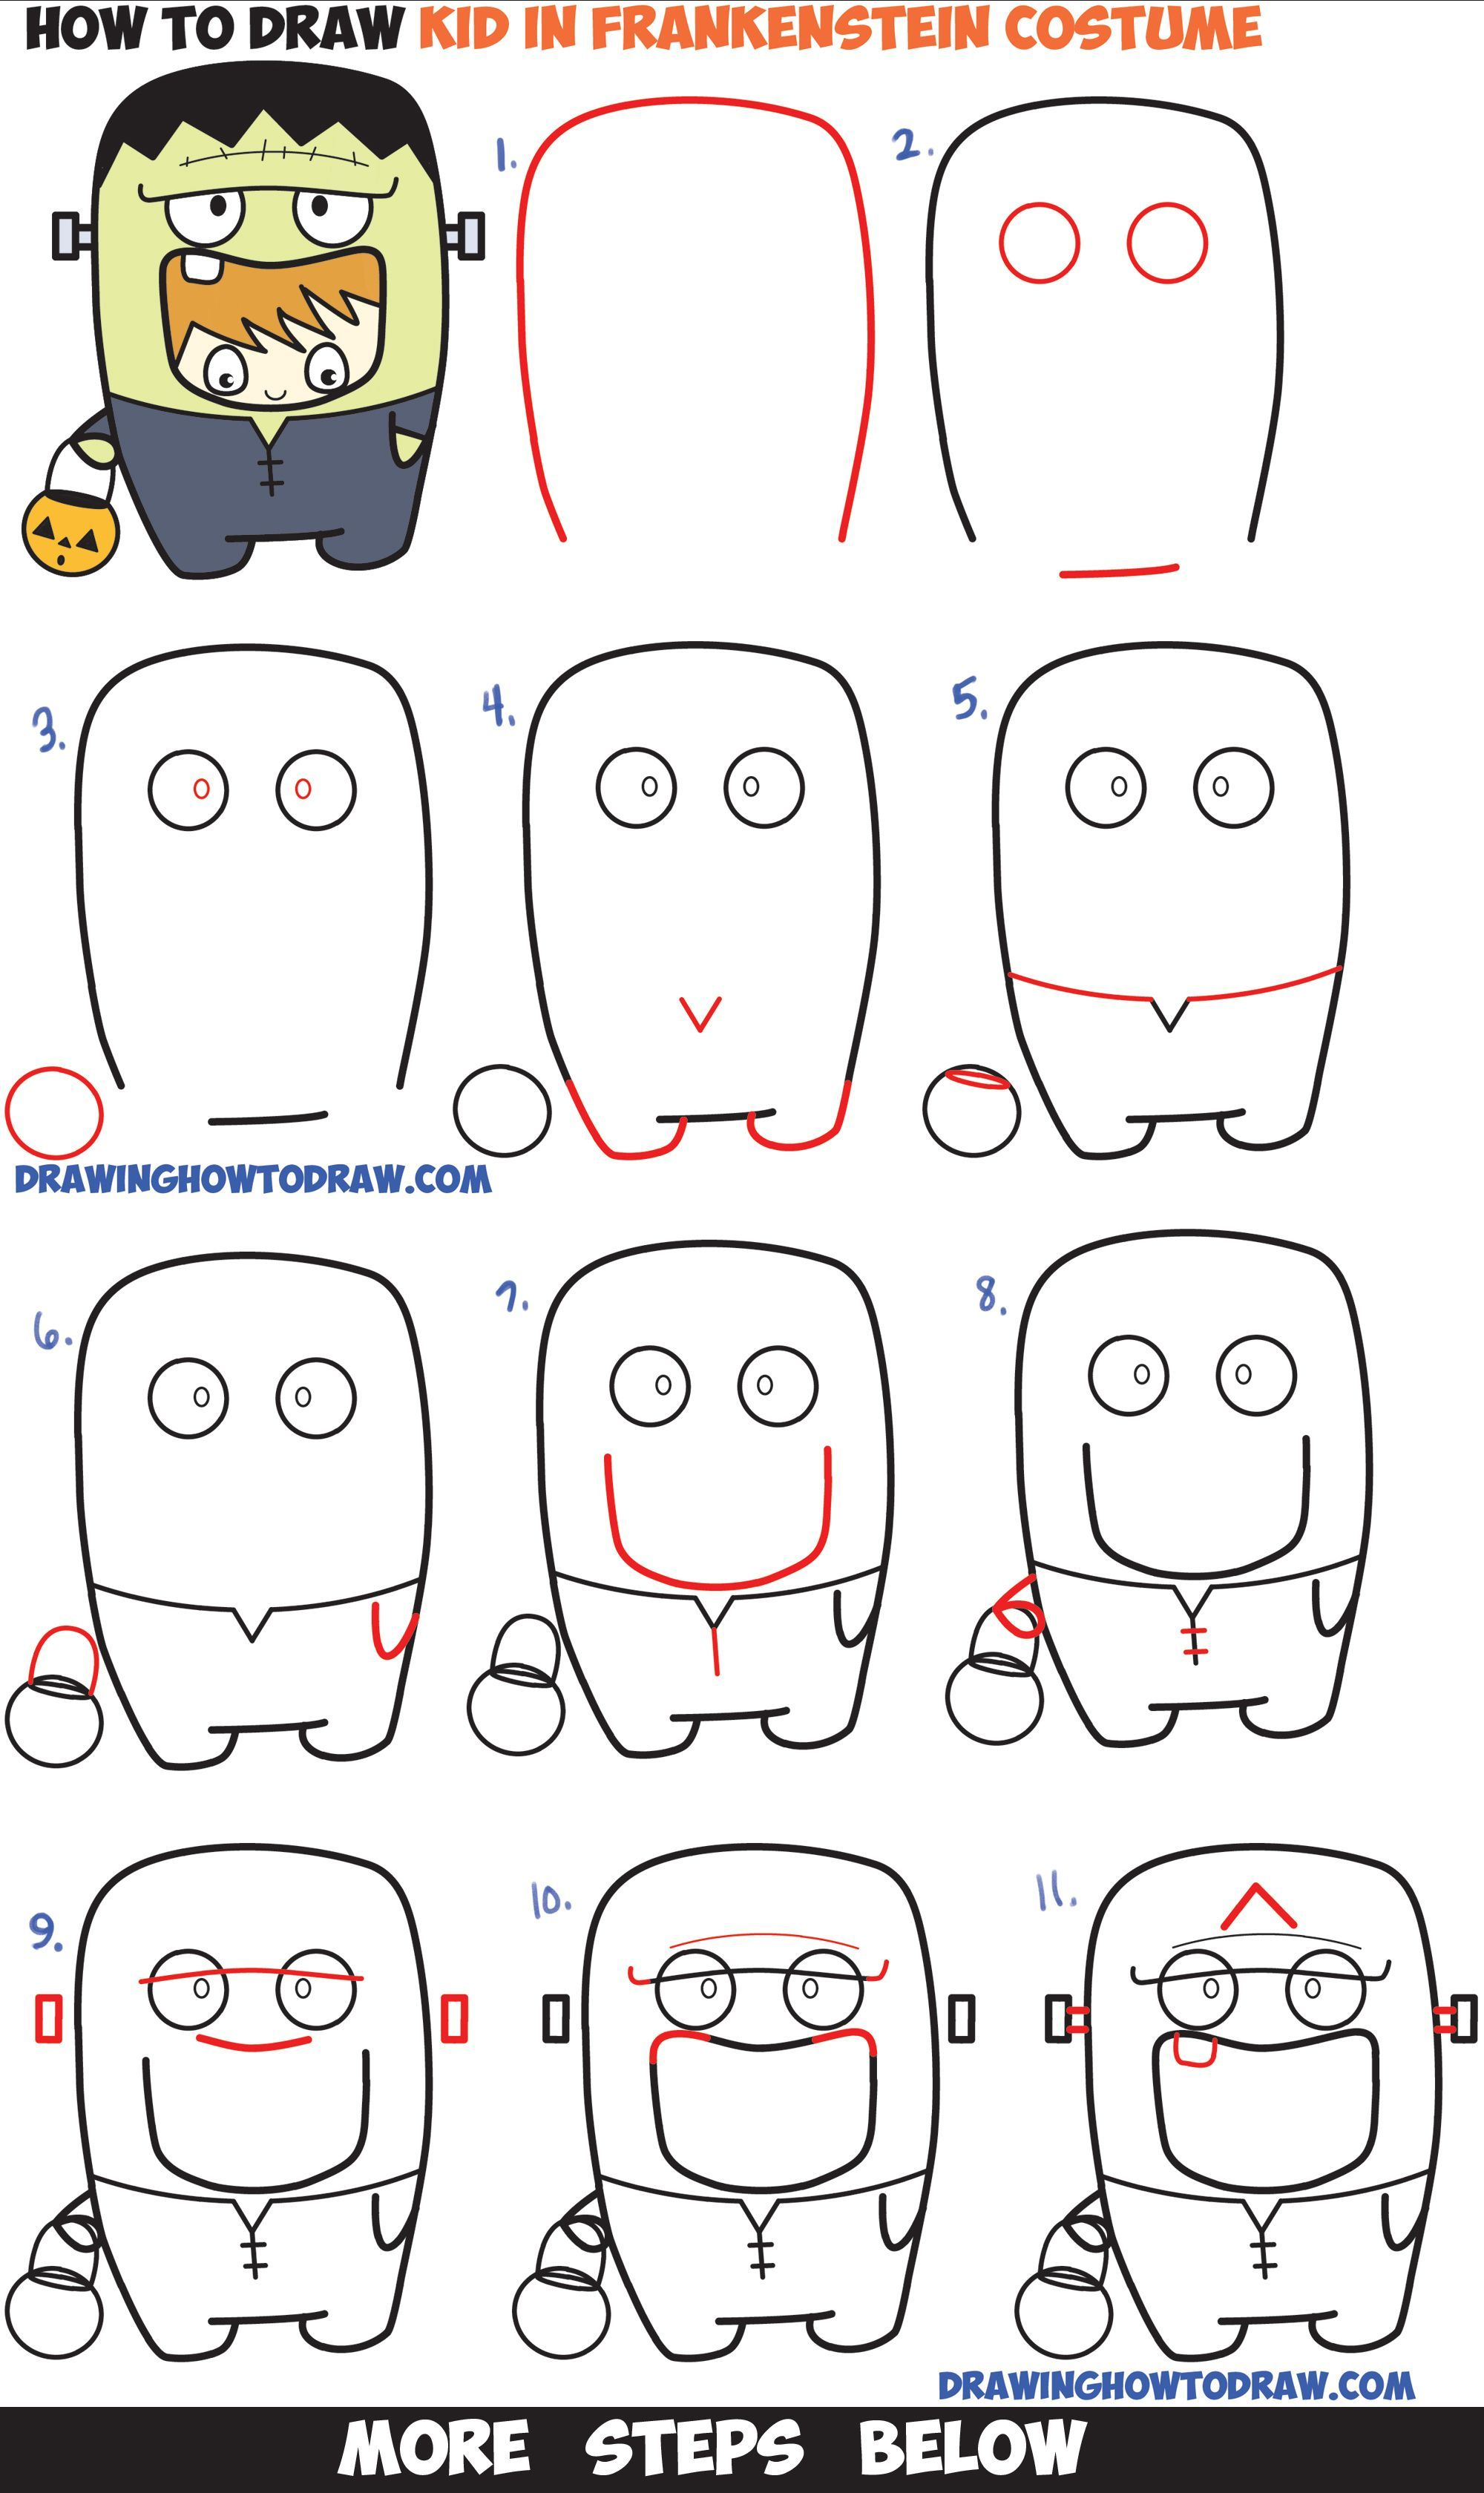 How To Draw A Kid In A Halloween Frankenstein Costume Cute Kawaii Easy Step By Step Dra Halloween Drawings Cute Halloween Drawings Drawing Tutorials For Kids